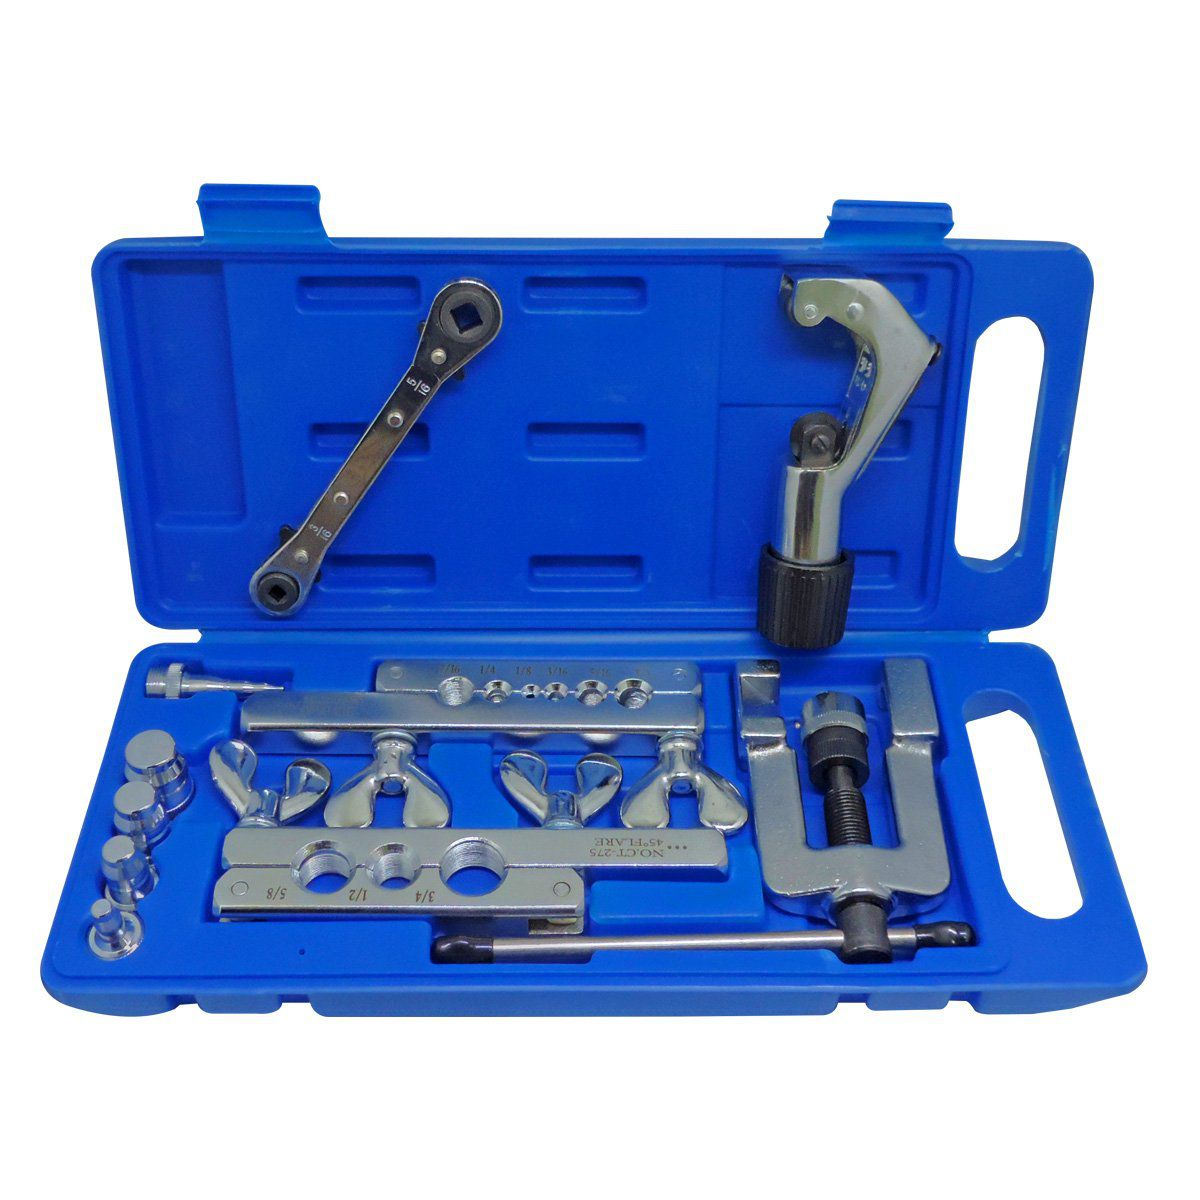 Kit Flangeador Gt278 1/8 À 3/4 Chave Catraca Completo